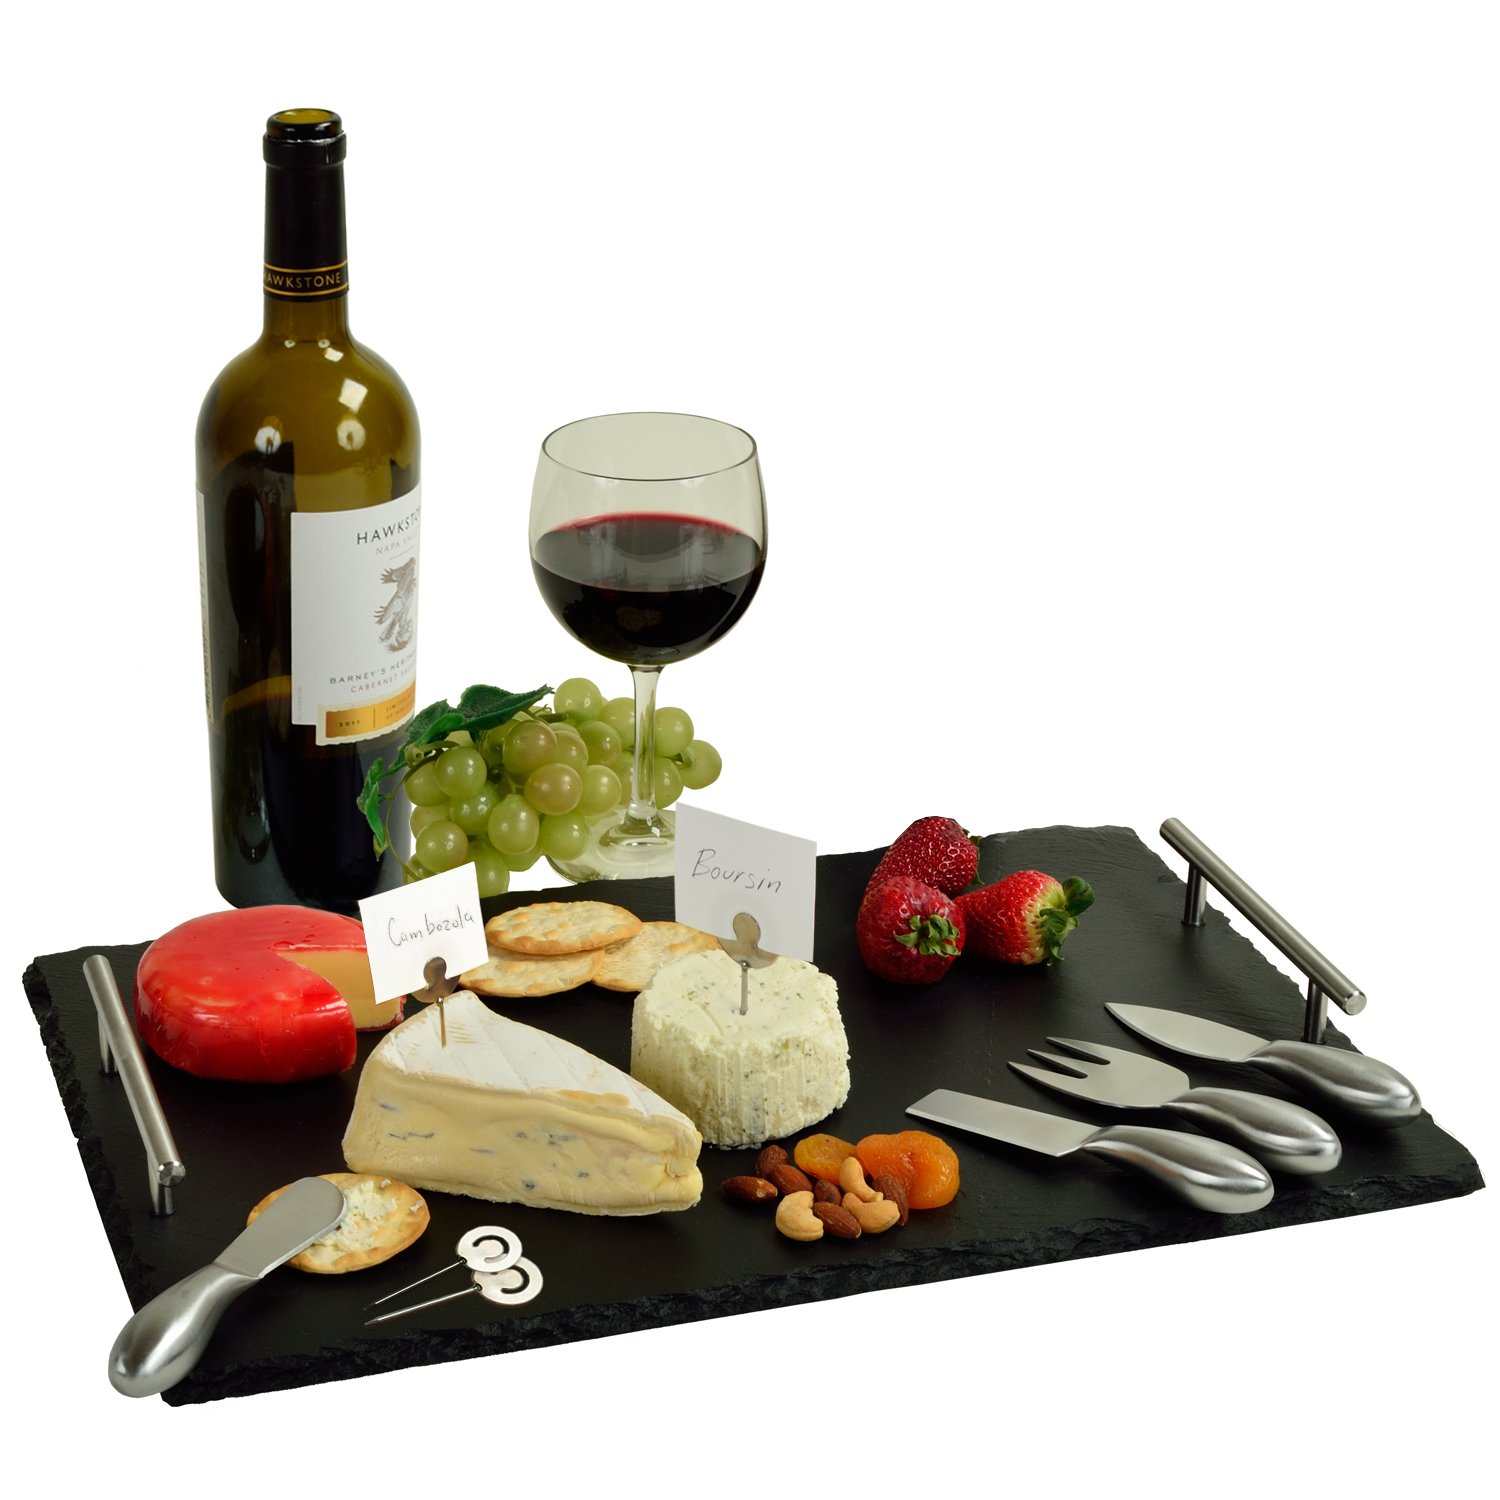 Picnic at Ascot Deluxe Handcrafted Slate Cheese Board/Charcuterie Platter with Stainless Steel Tools, Cheese Markers and Soapstone Chalk - A Great Holiday Gift for all Gourmets CB950